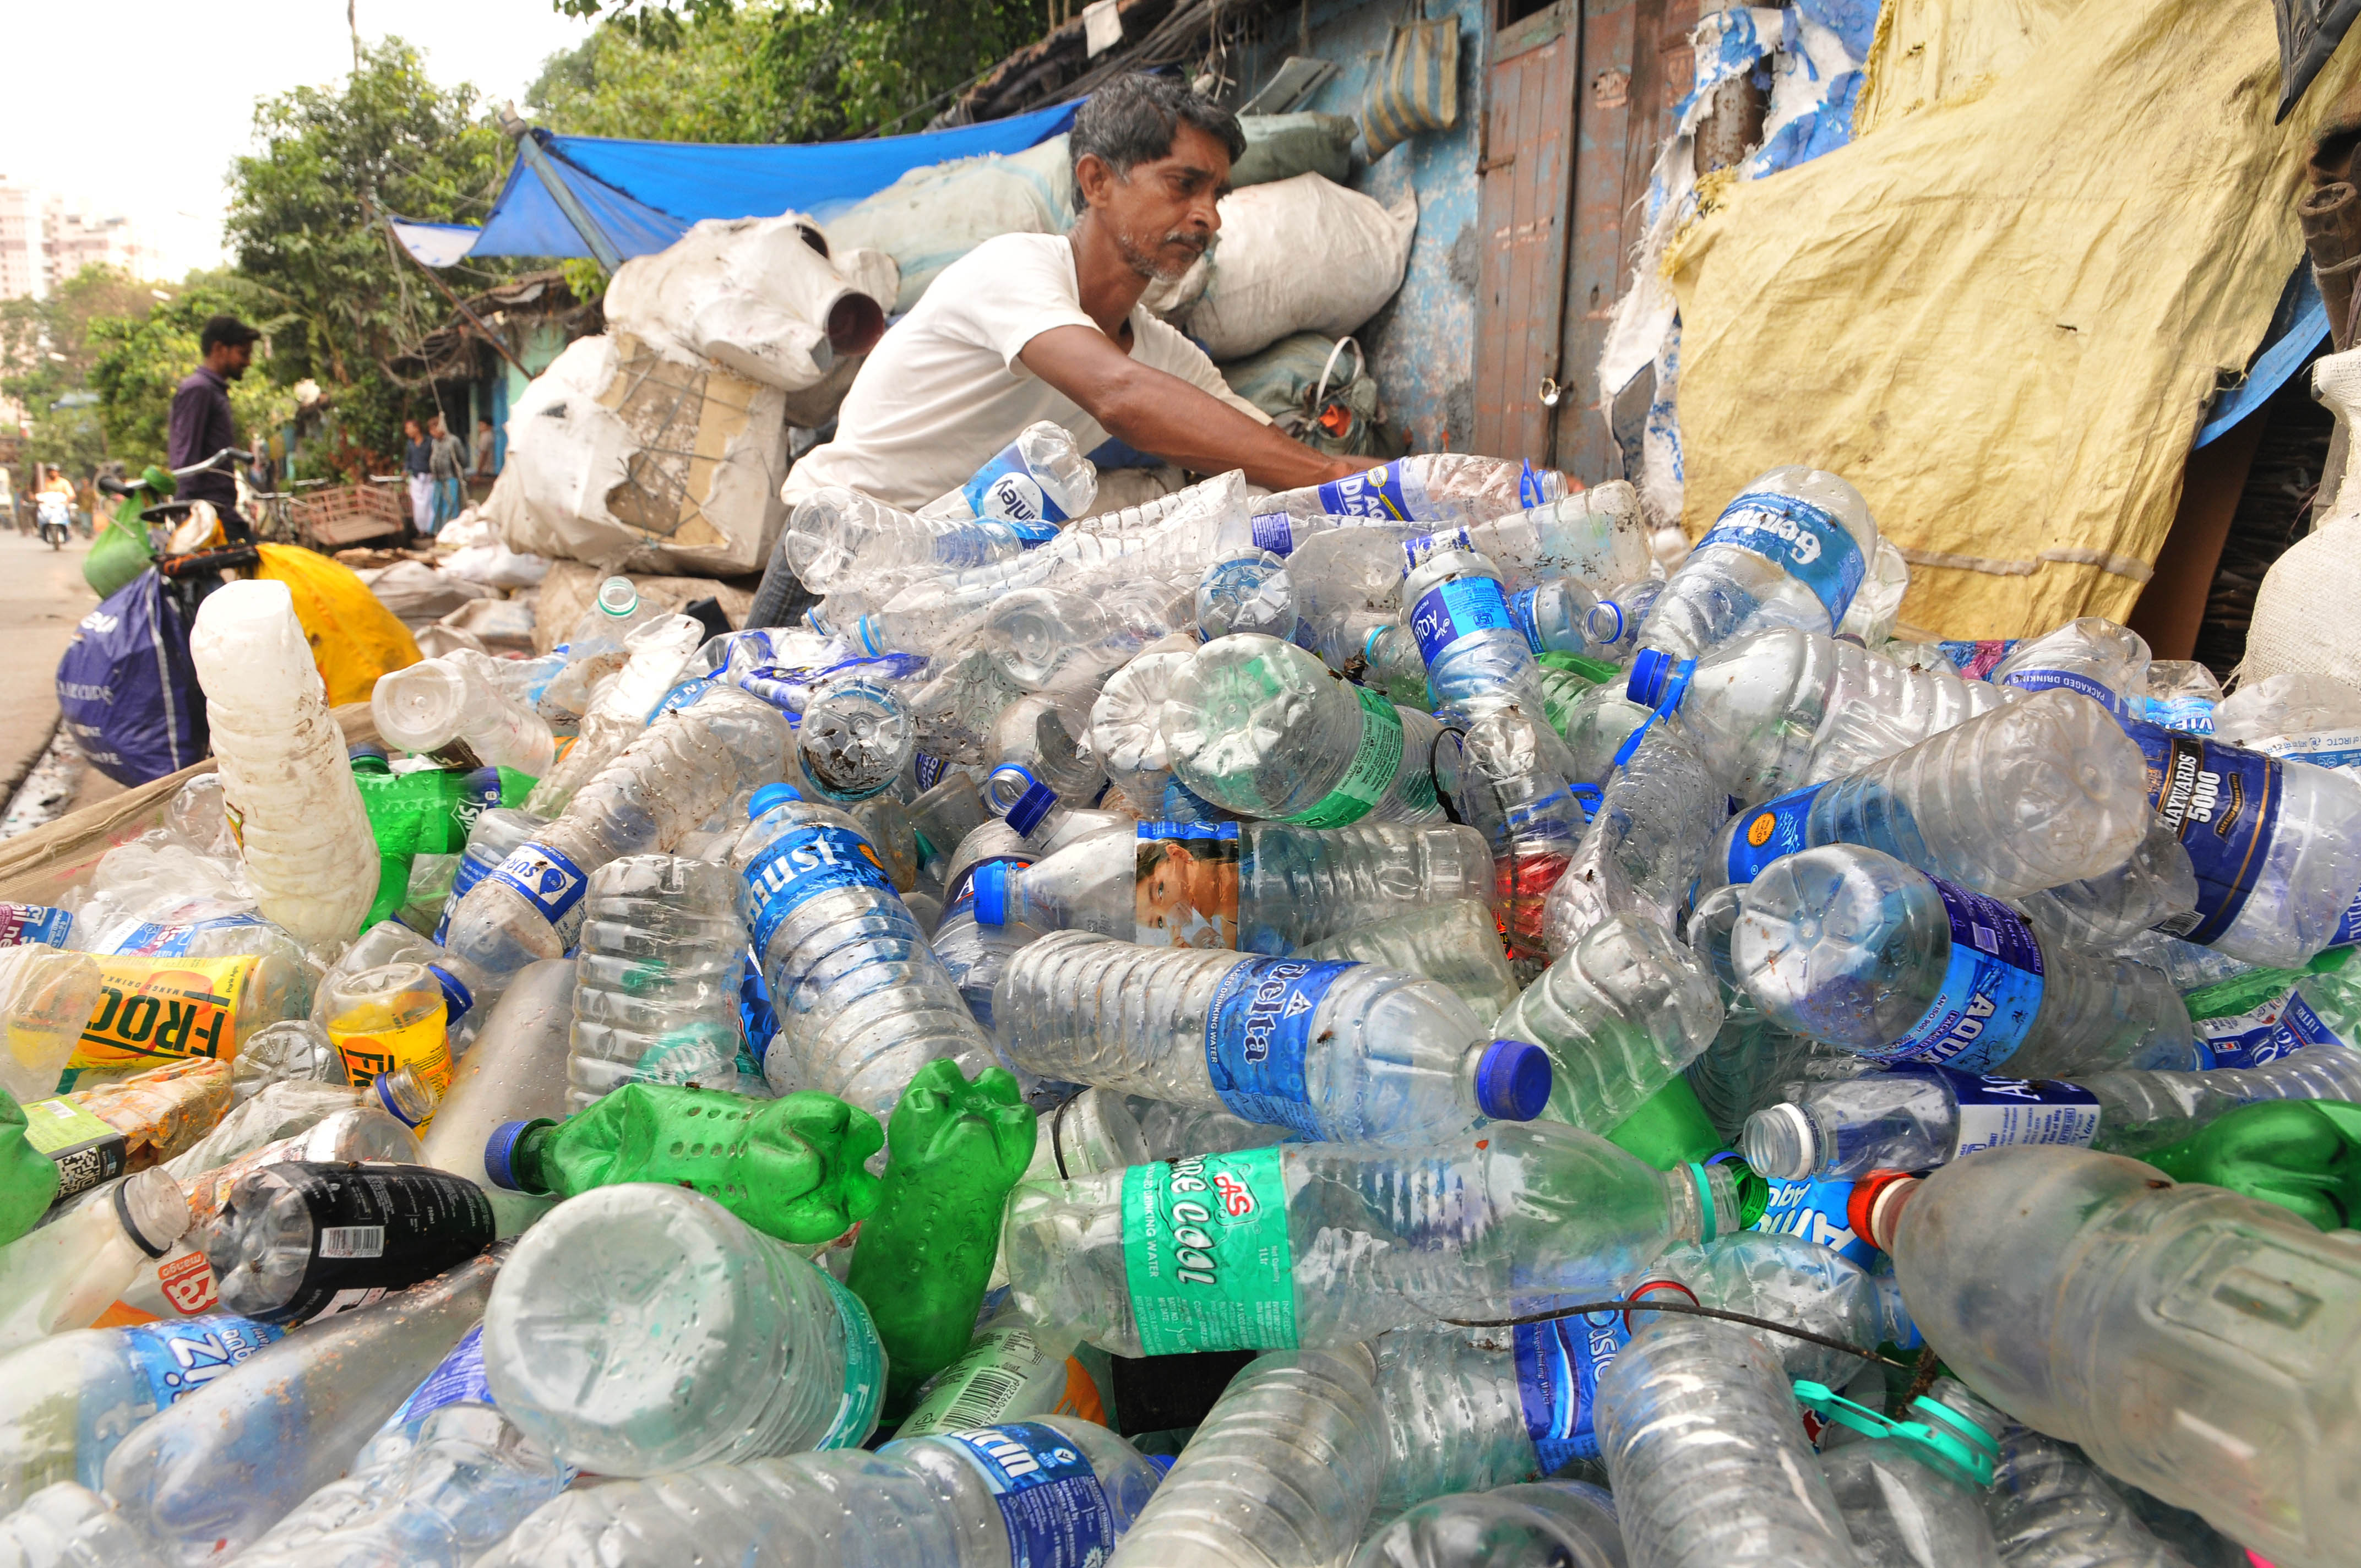 Plastic material at a dump yard during the 'World Environment Day' in Kolkata, India, on June 5, 2018.